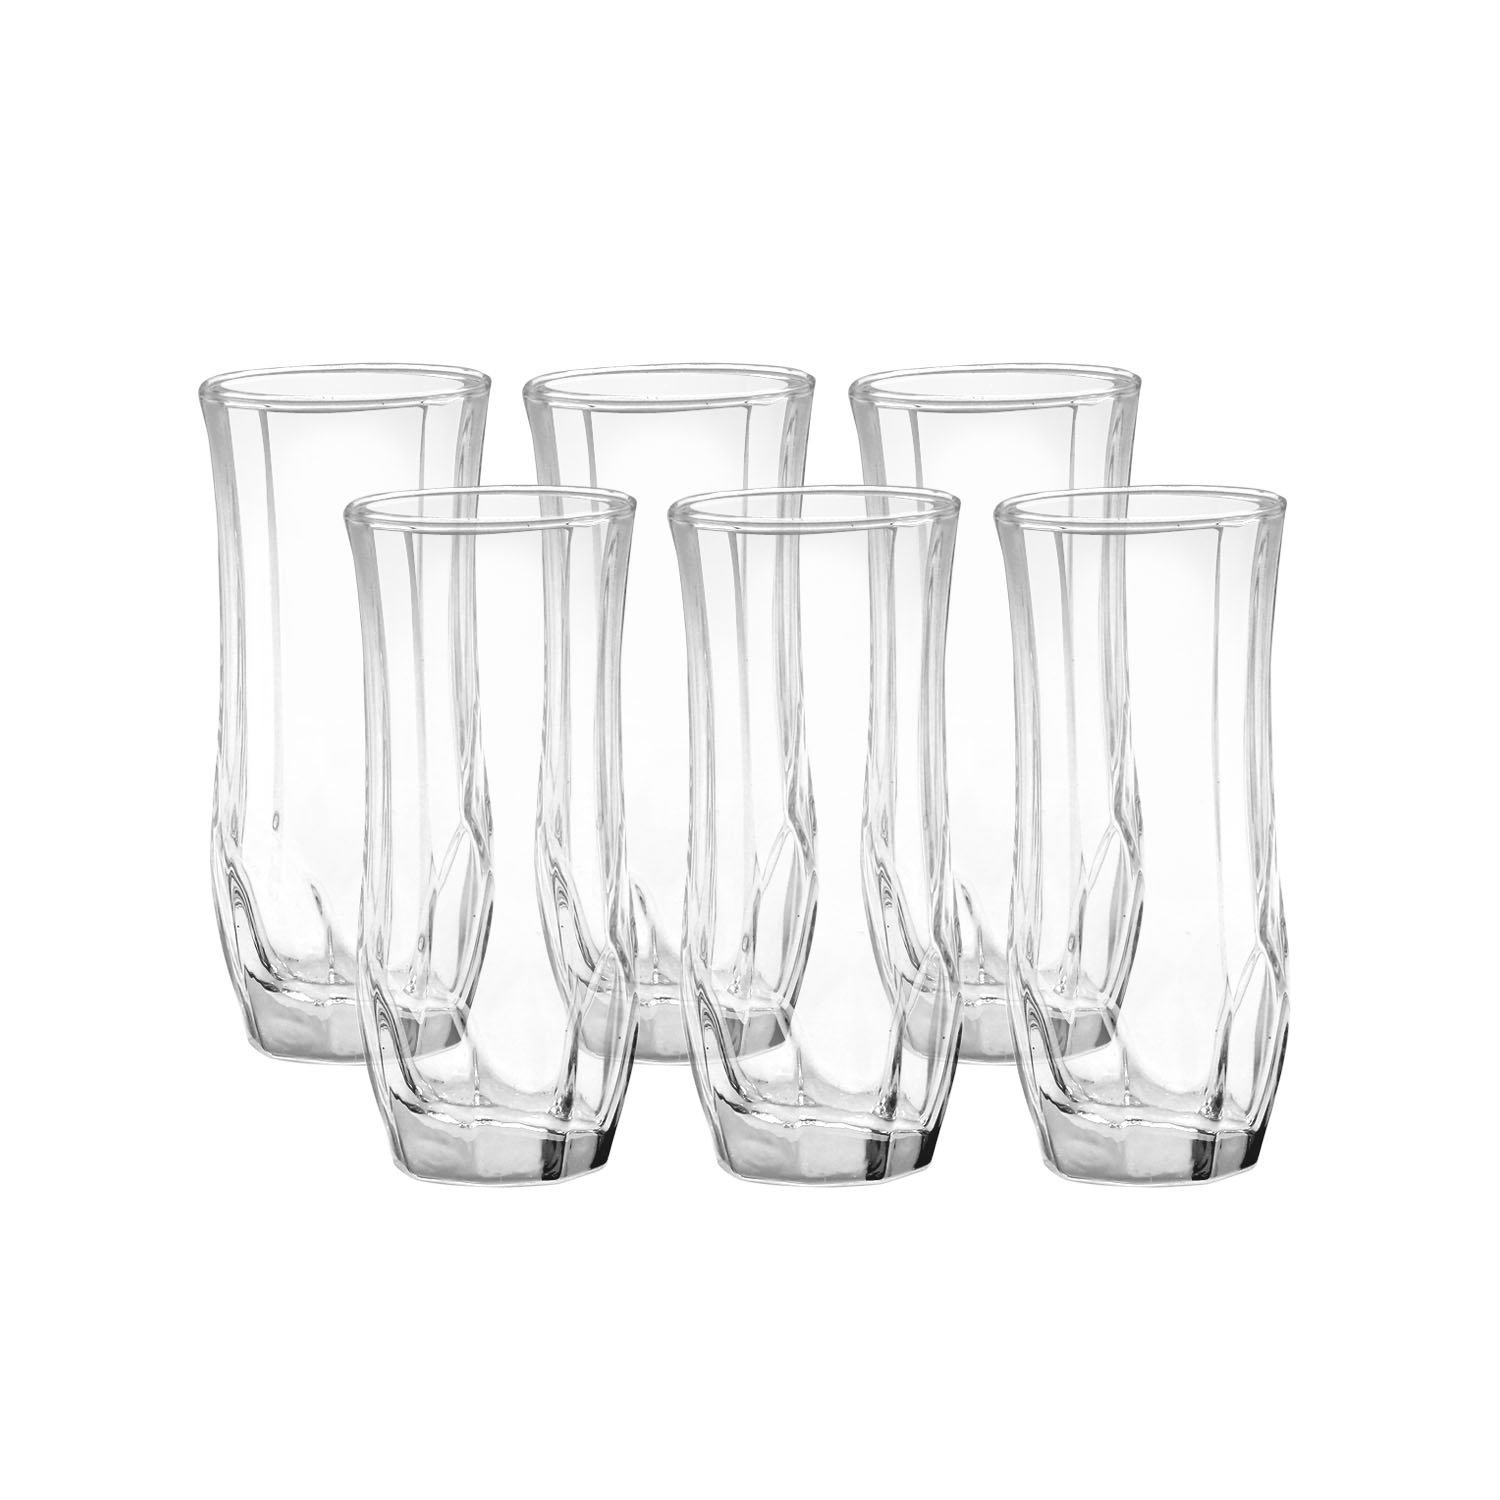 Home Pride Crystal Glass Set 6pcs A